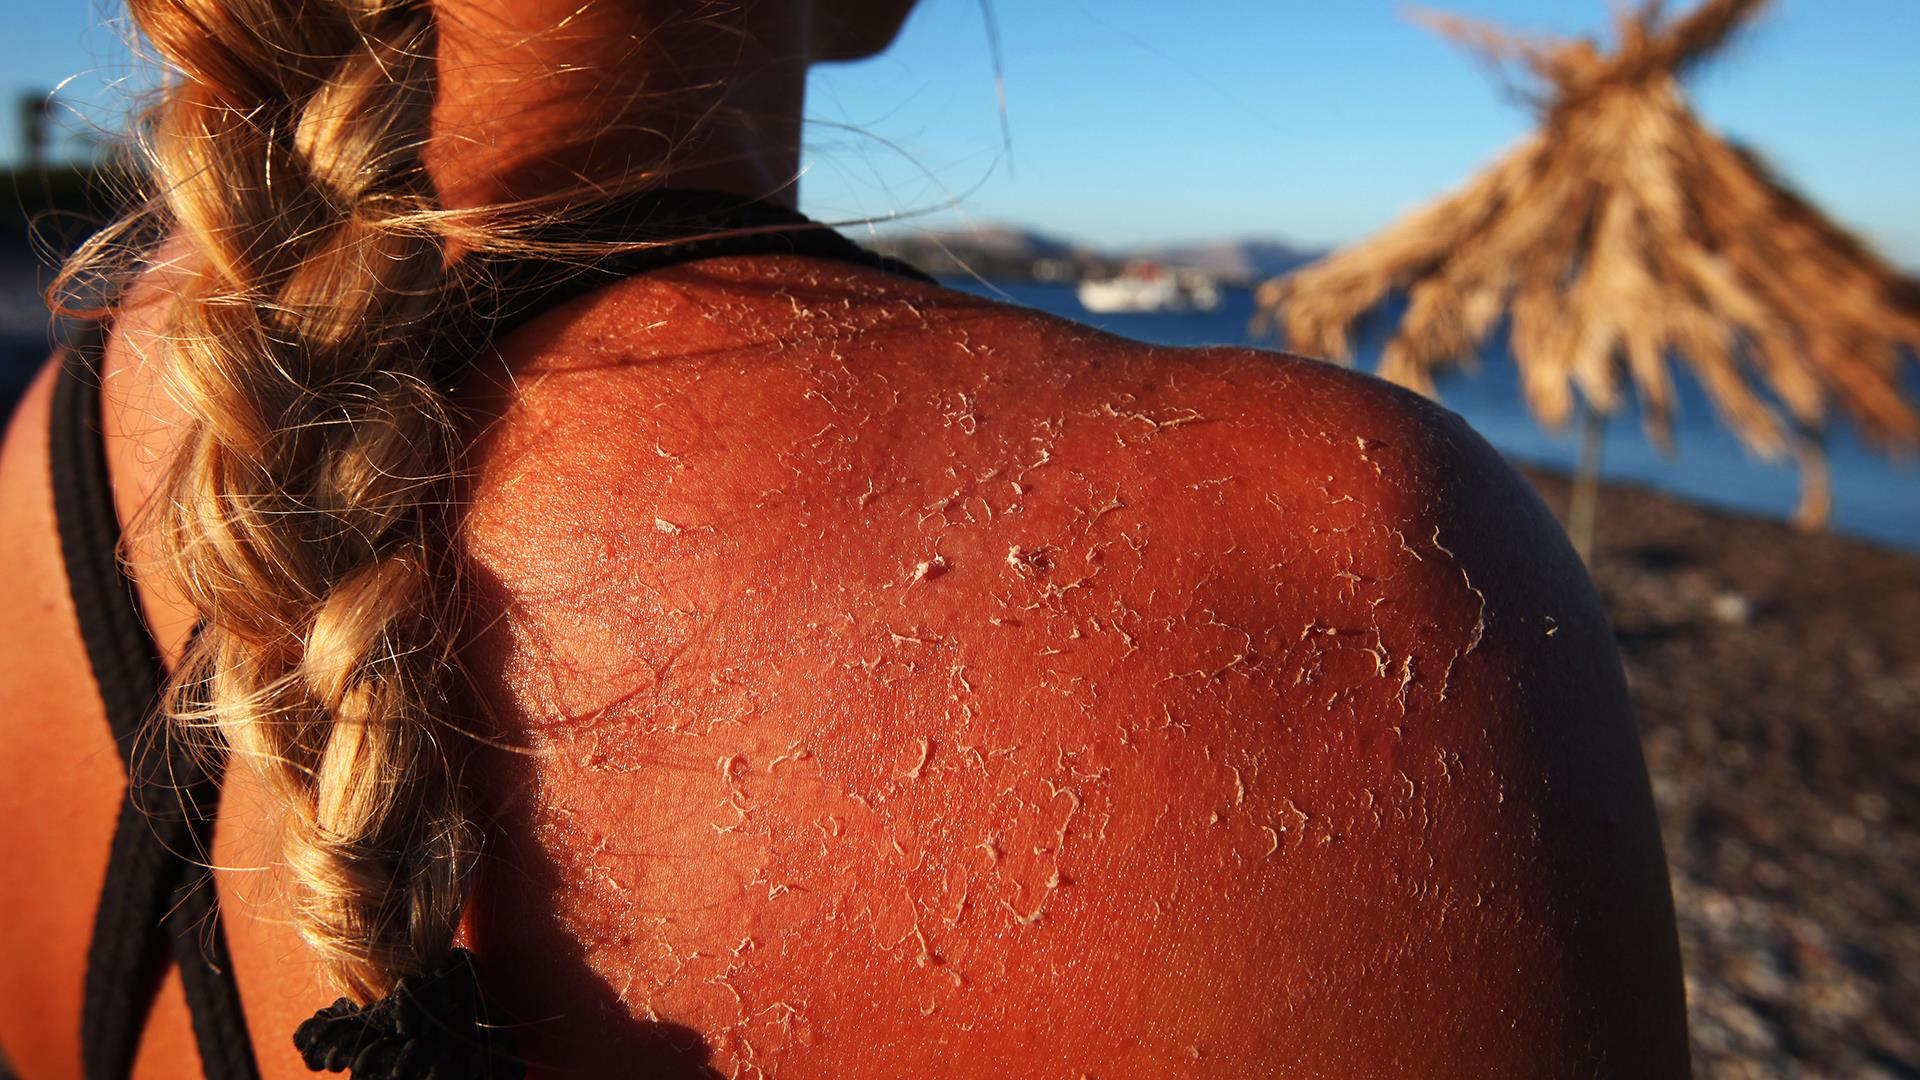 Do I have sun poisoning? 3 things you need to know